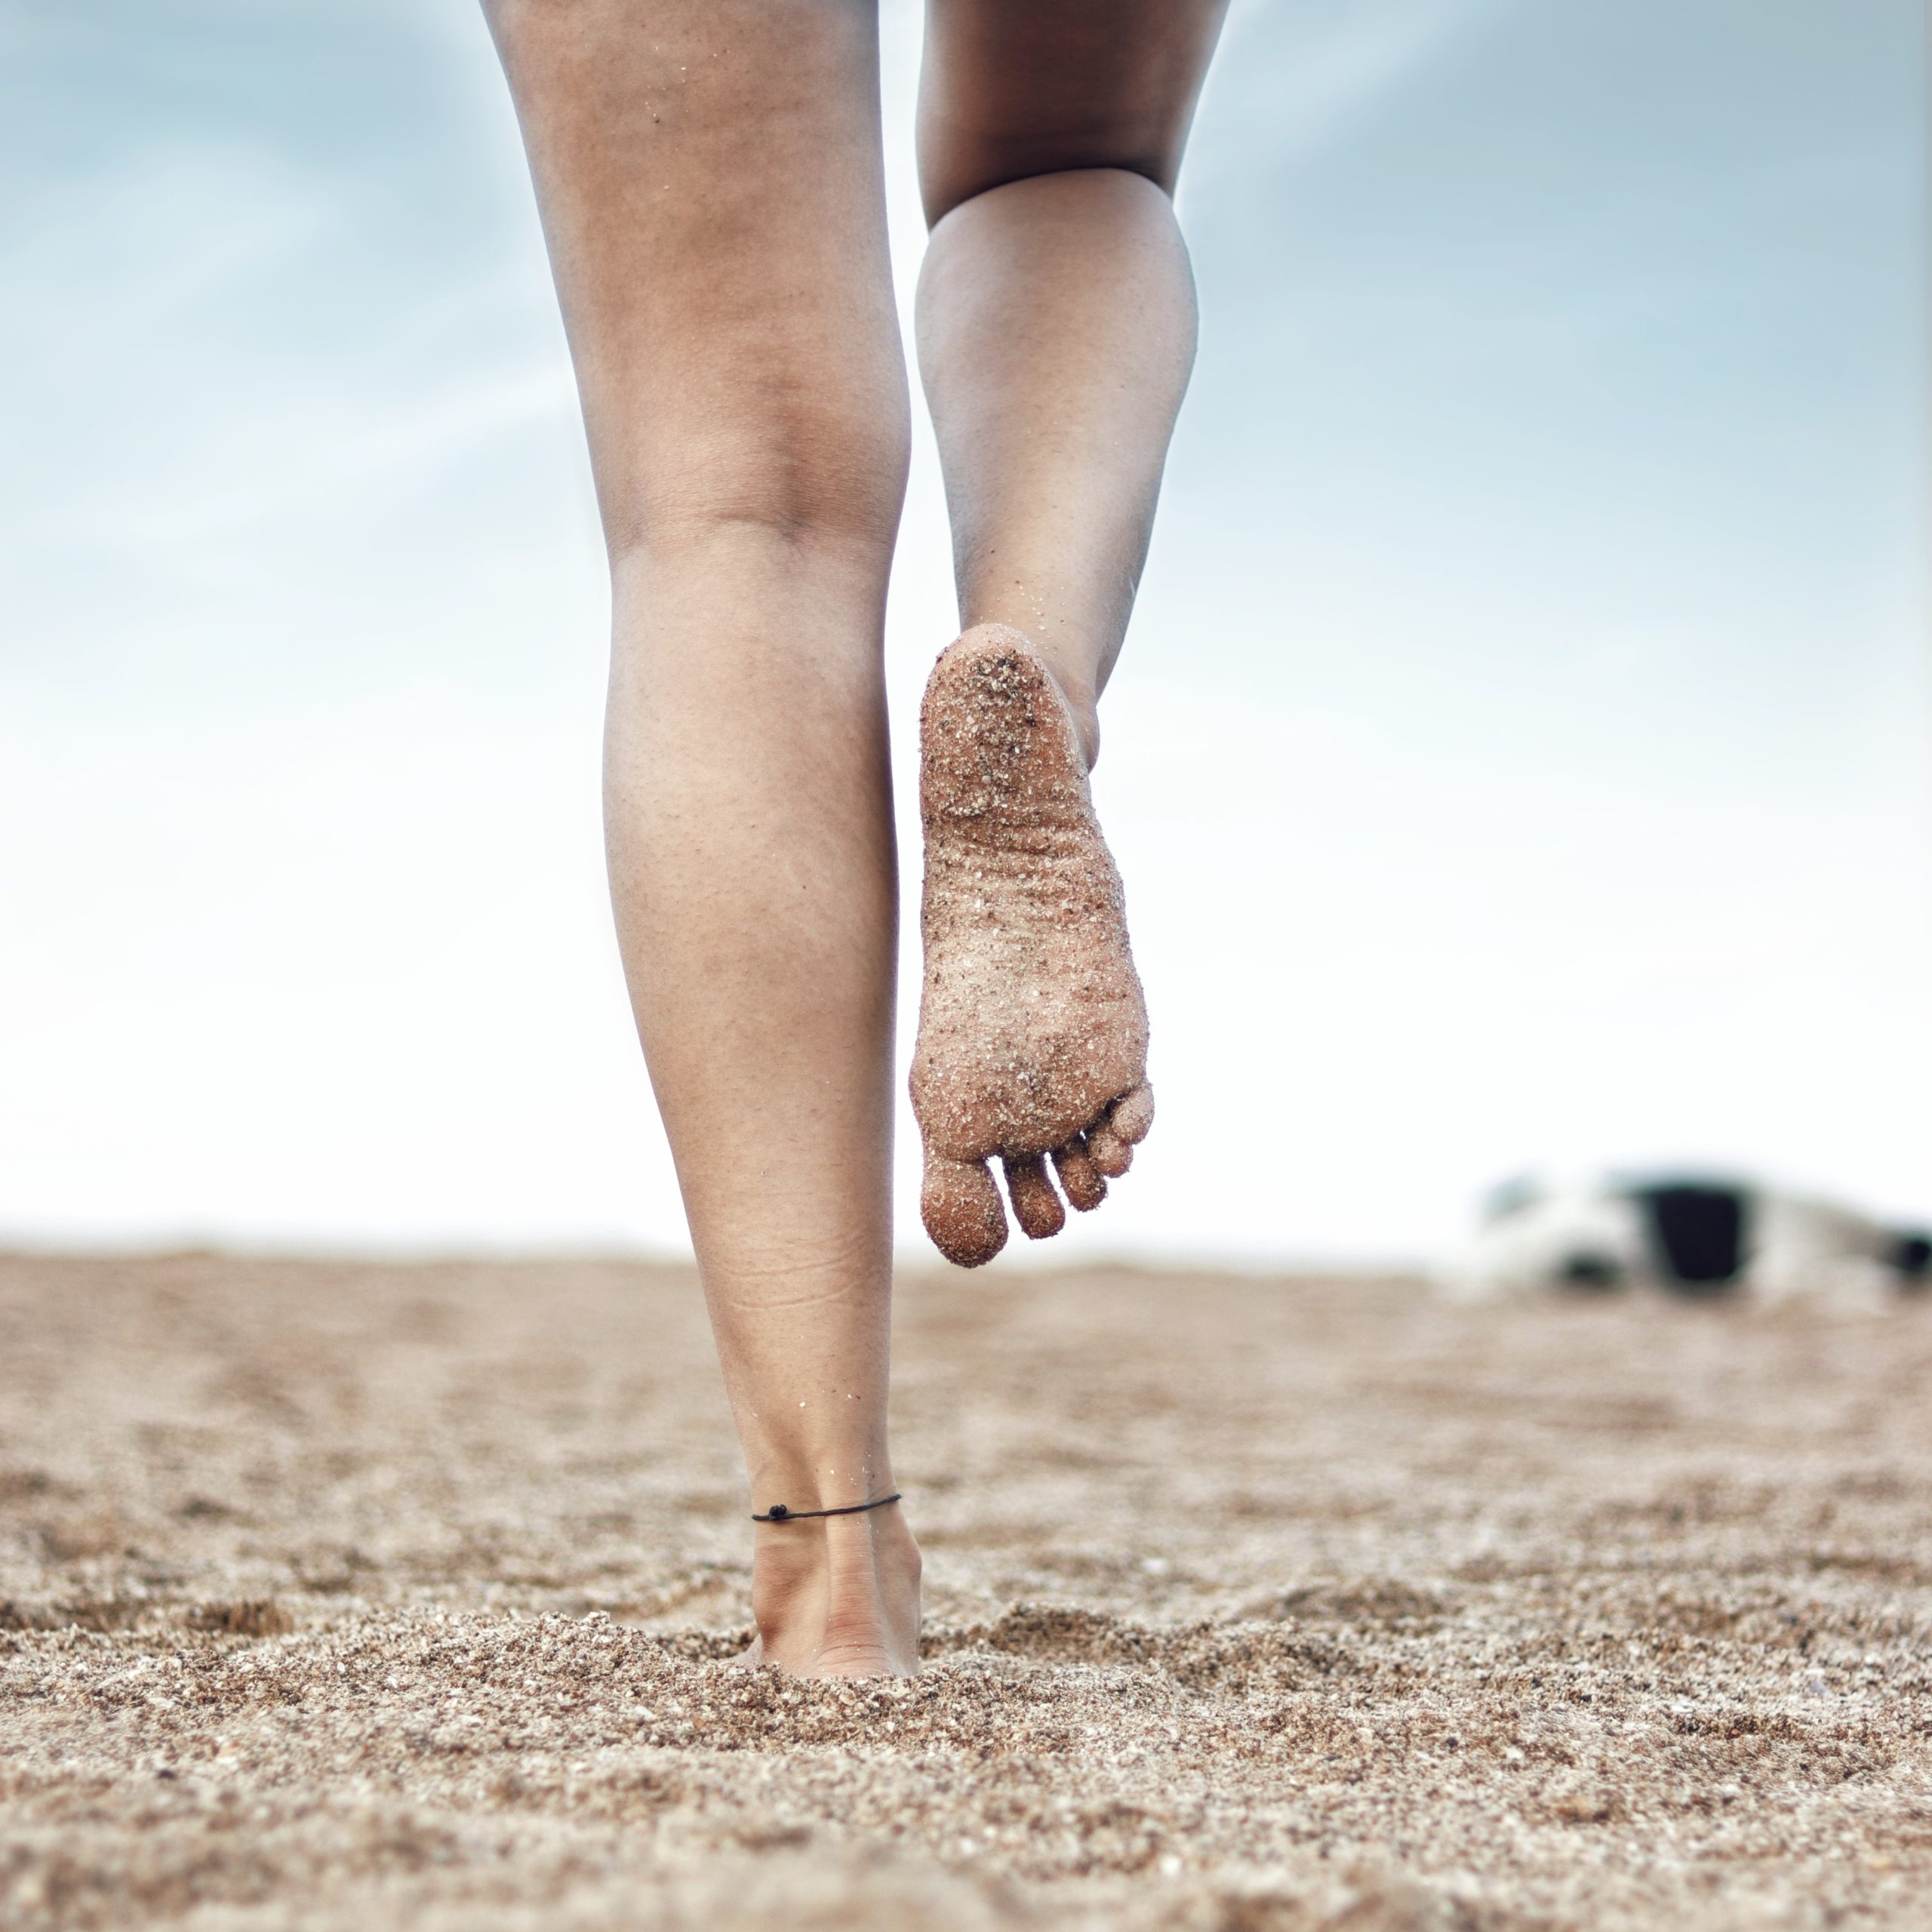 what to expect with bunion surgery